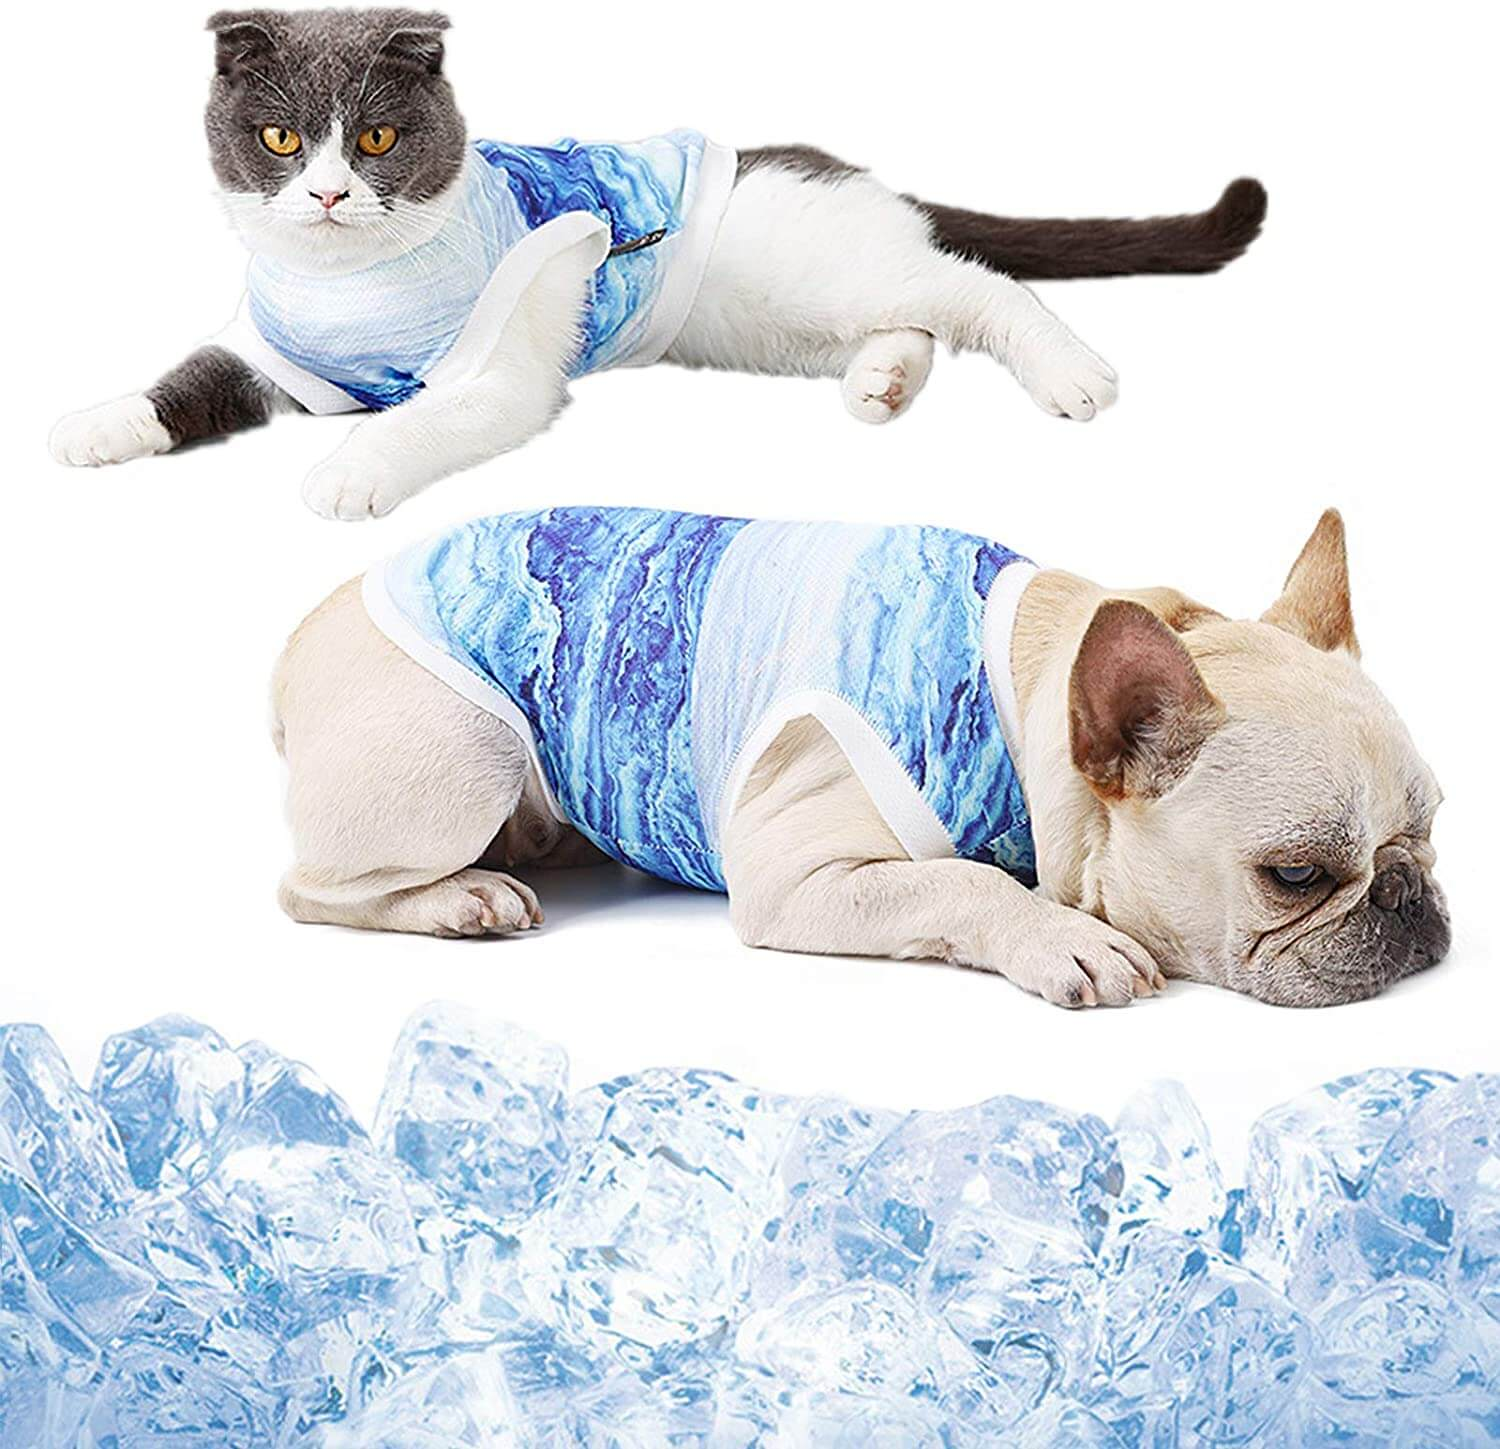 shirts protect your pet's continuous glucose monitoring device